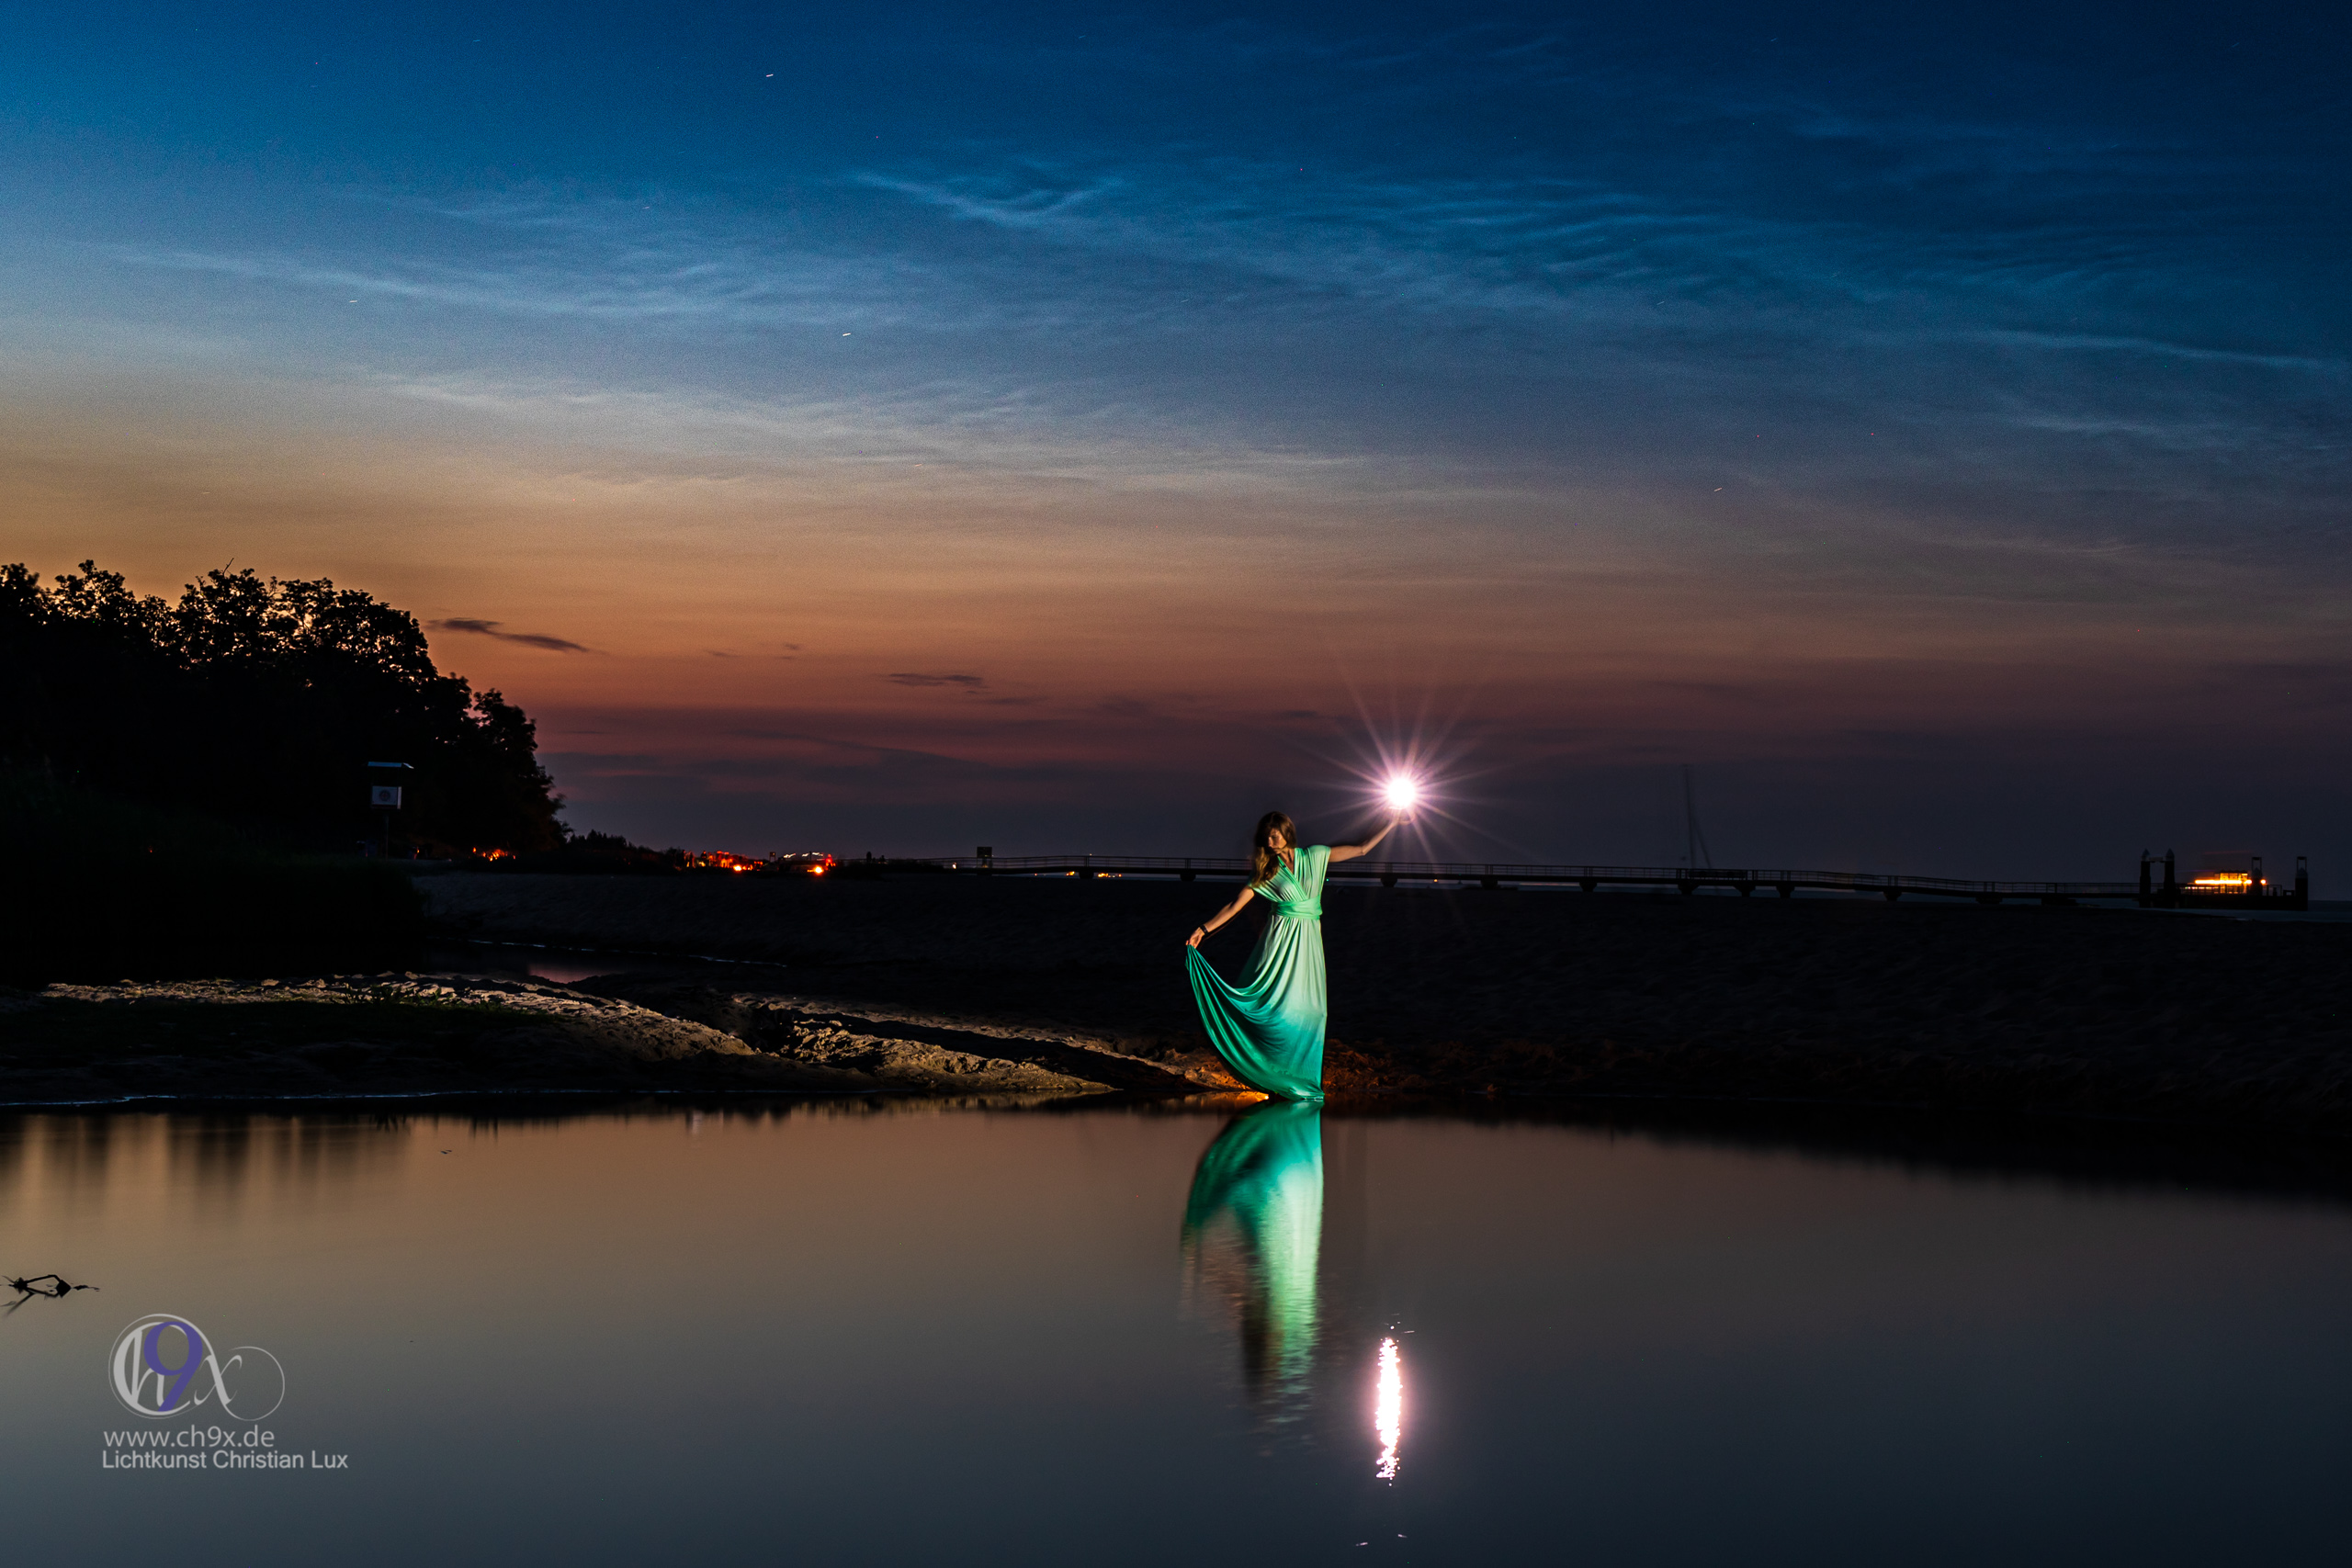 Lightpainting Fotoshooting an der Ostsee mit NLC